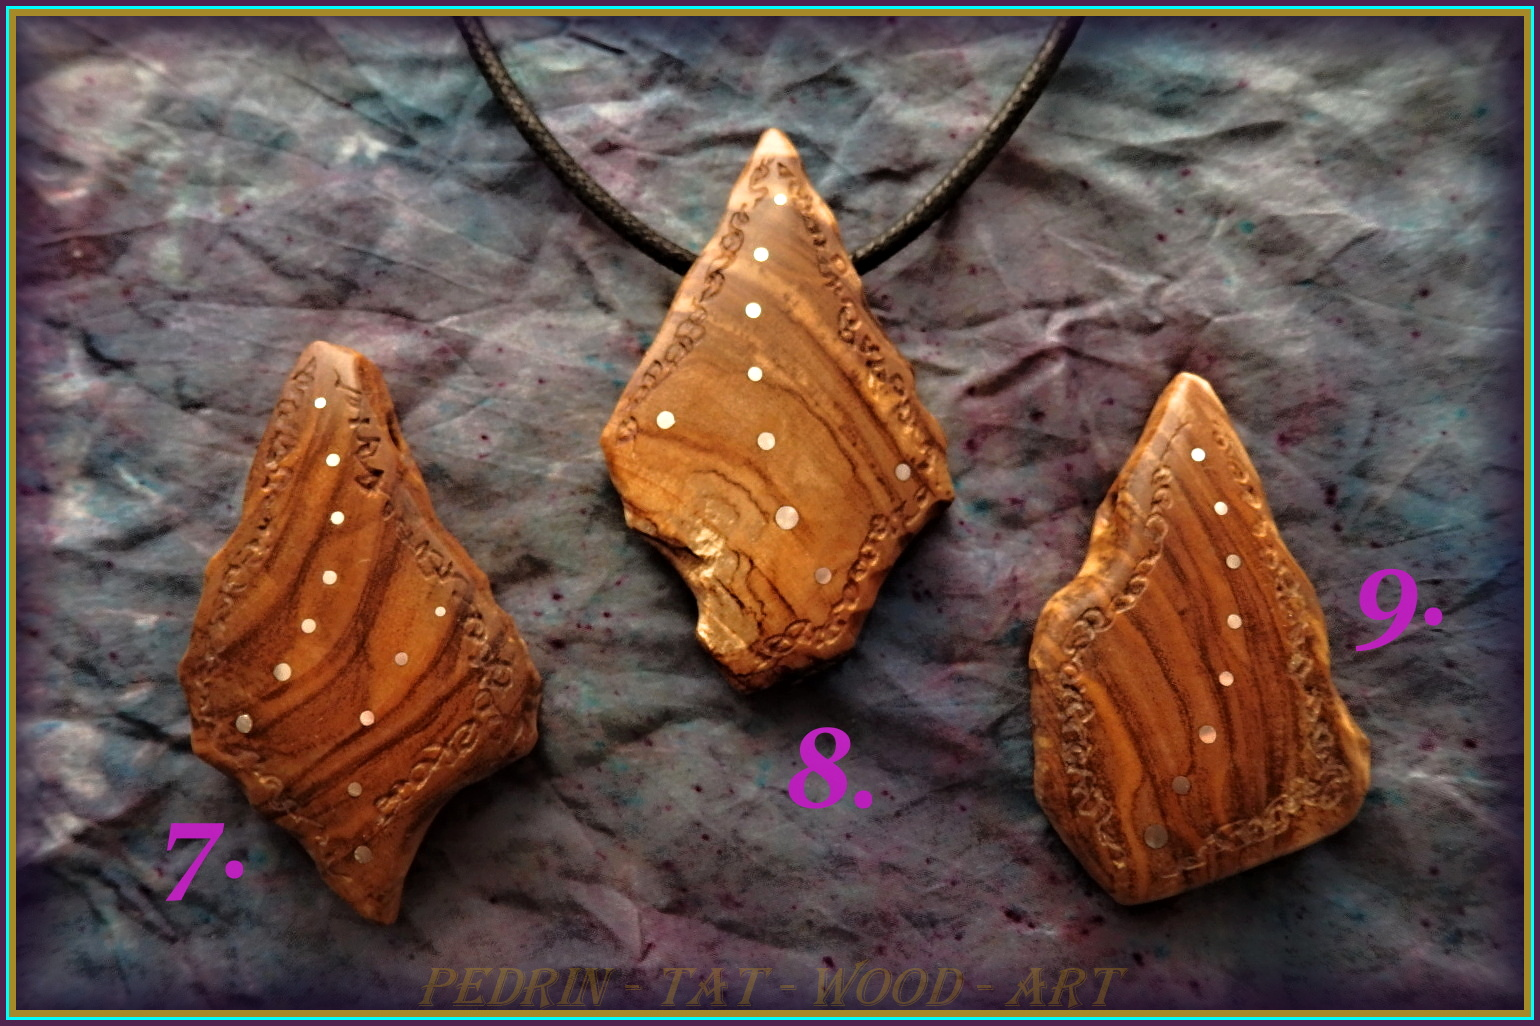 WOODEN NECKLACES - OLIVEN WOOD - SICILIA 7.8.9.